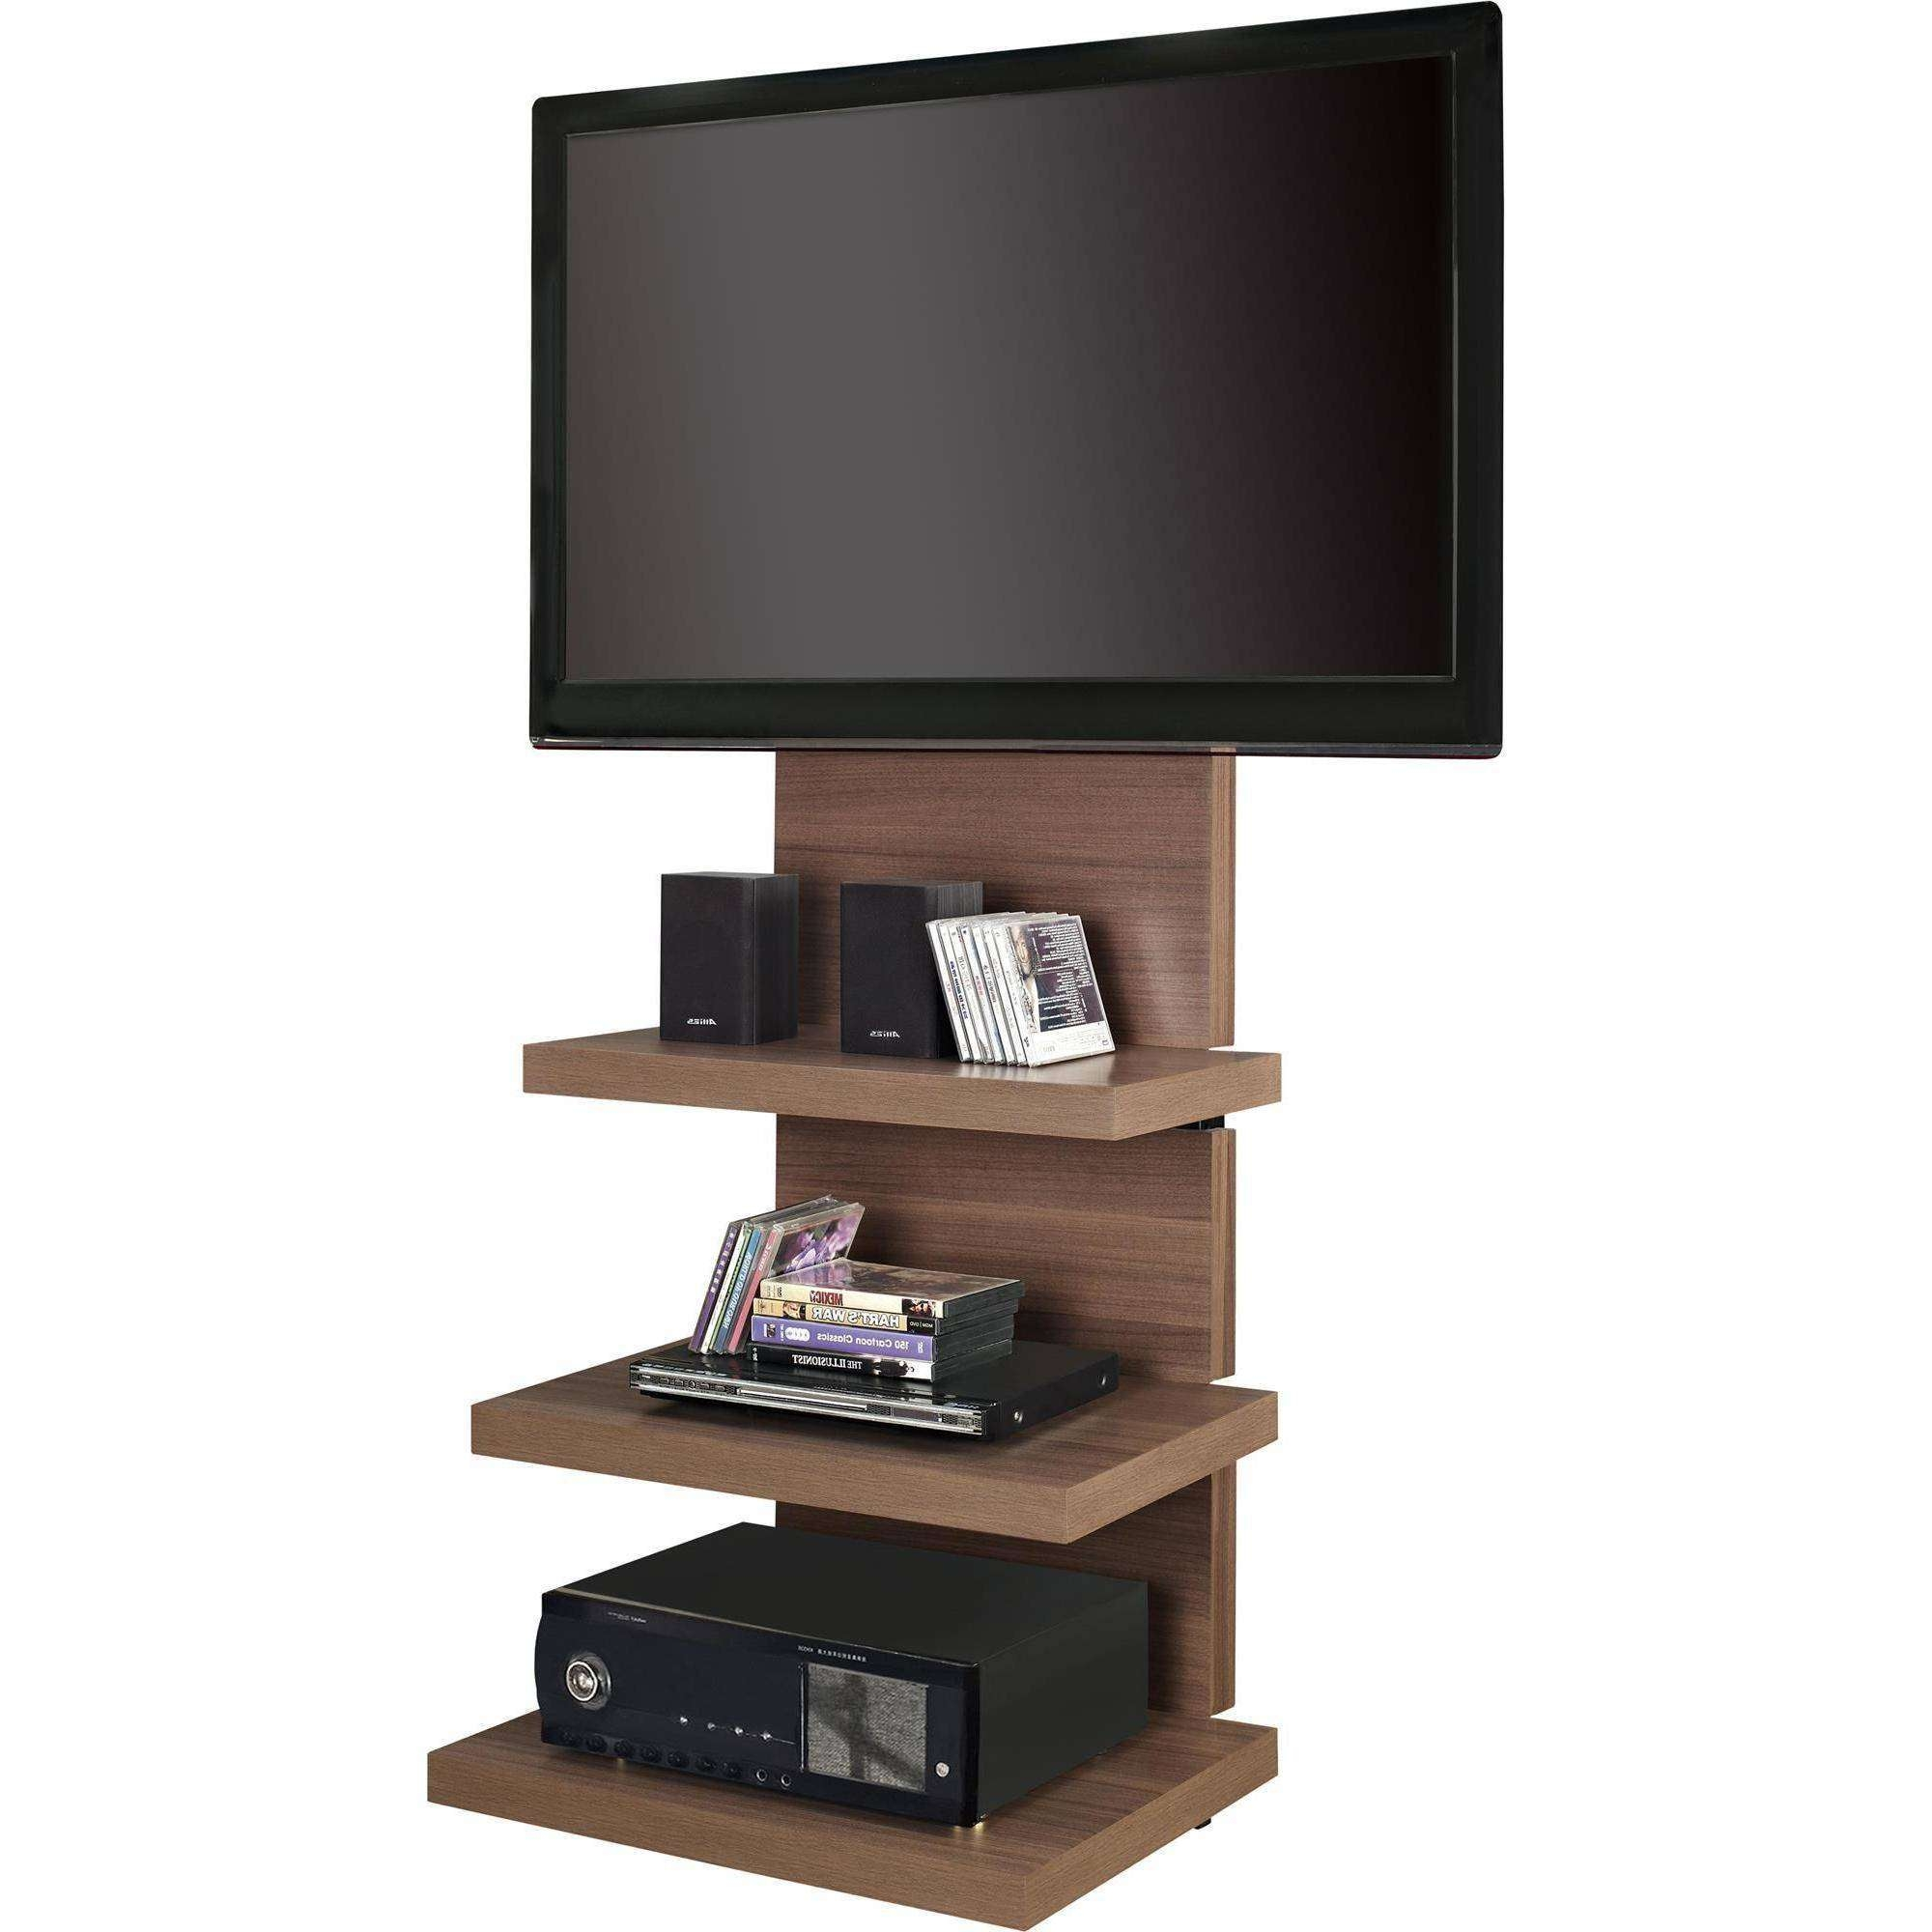 Tv Stand : Da1de92aaf0e 1 Marvelous Tv Stand With Pictures Design With Cordoba Tv Stands (View 8 of 15)